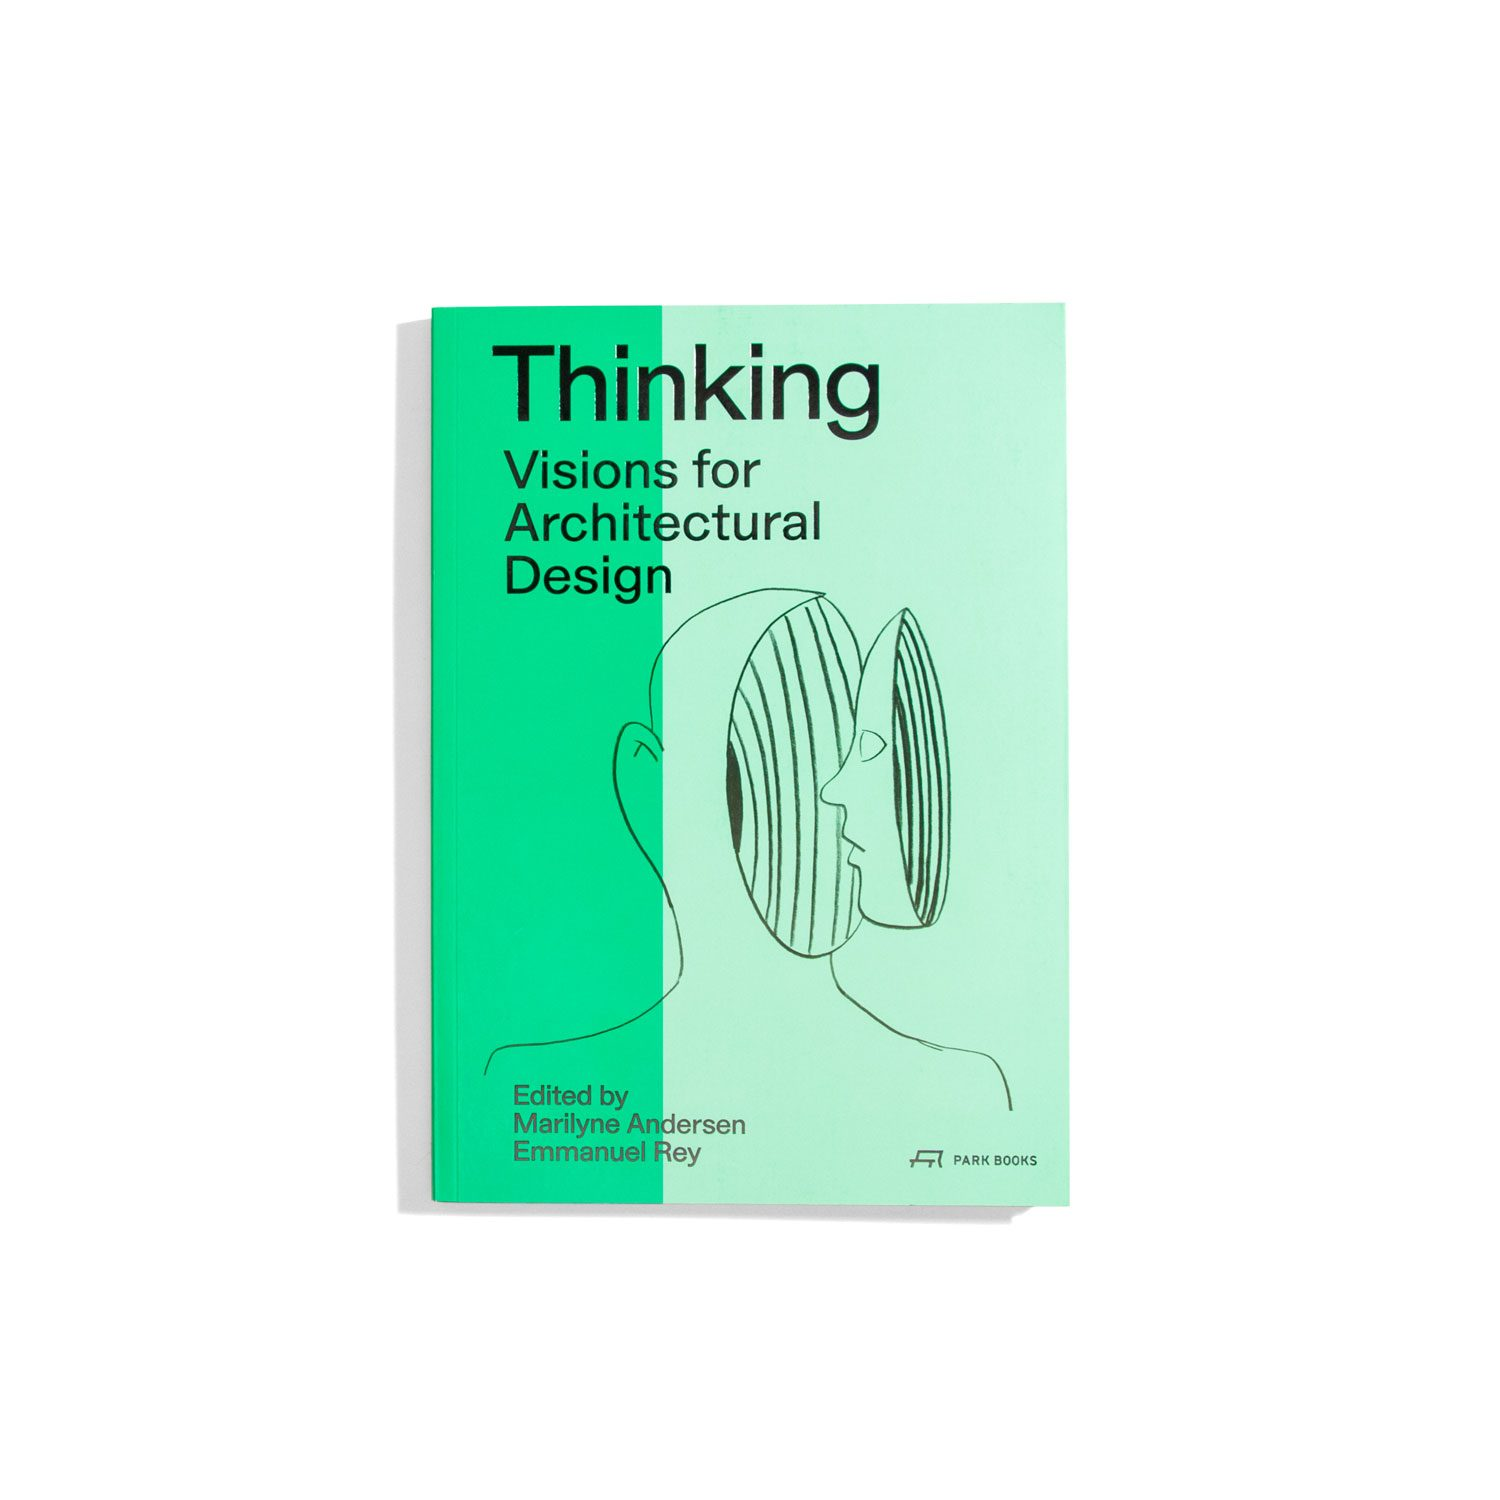 Thinking - Visions for Architectural Design - Marilyne Andersen